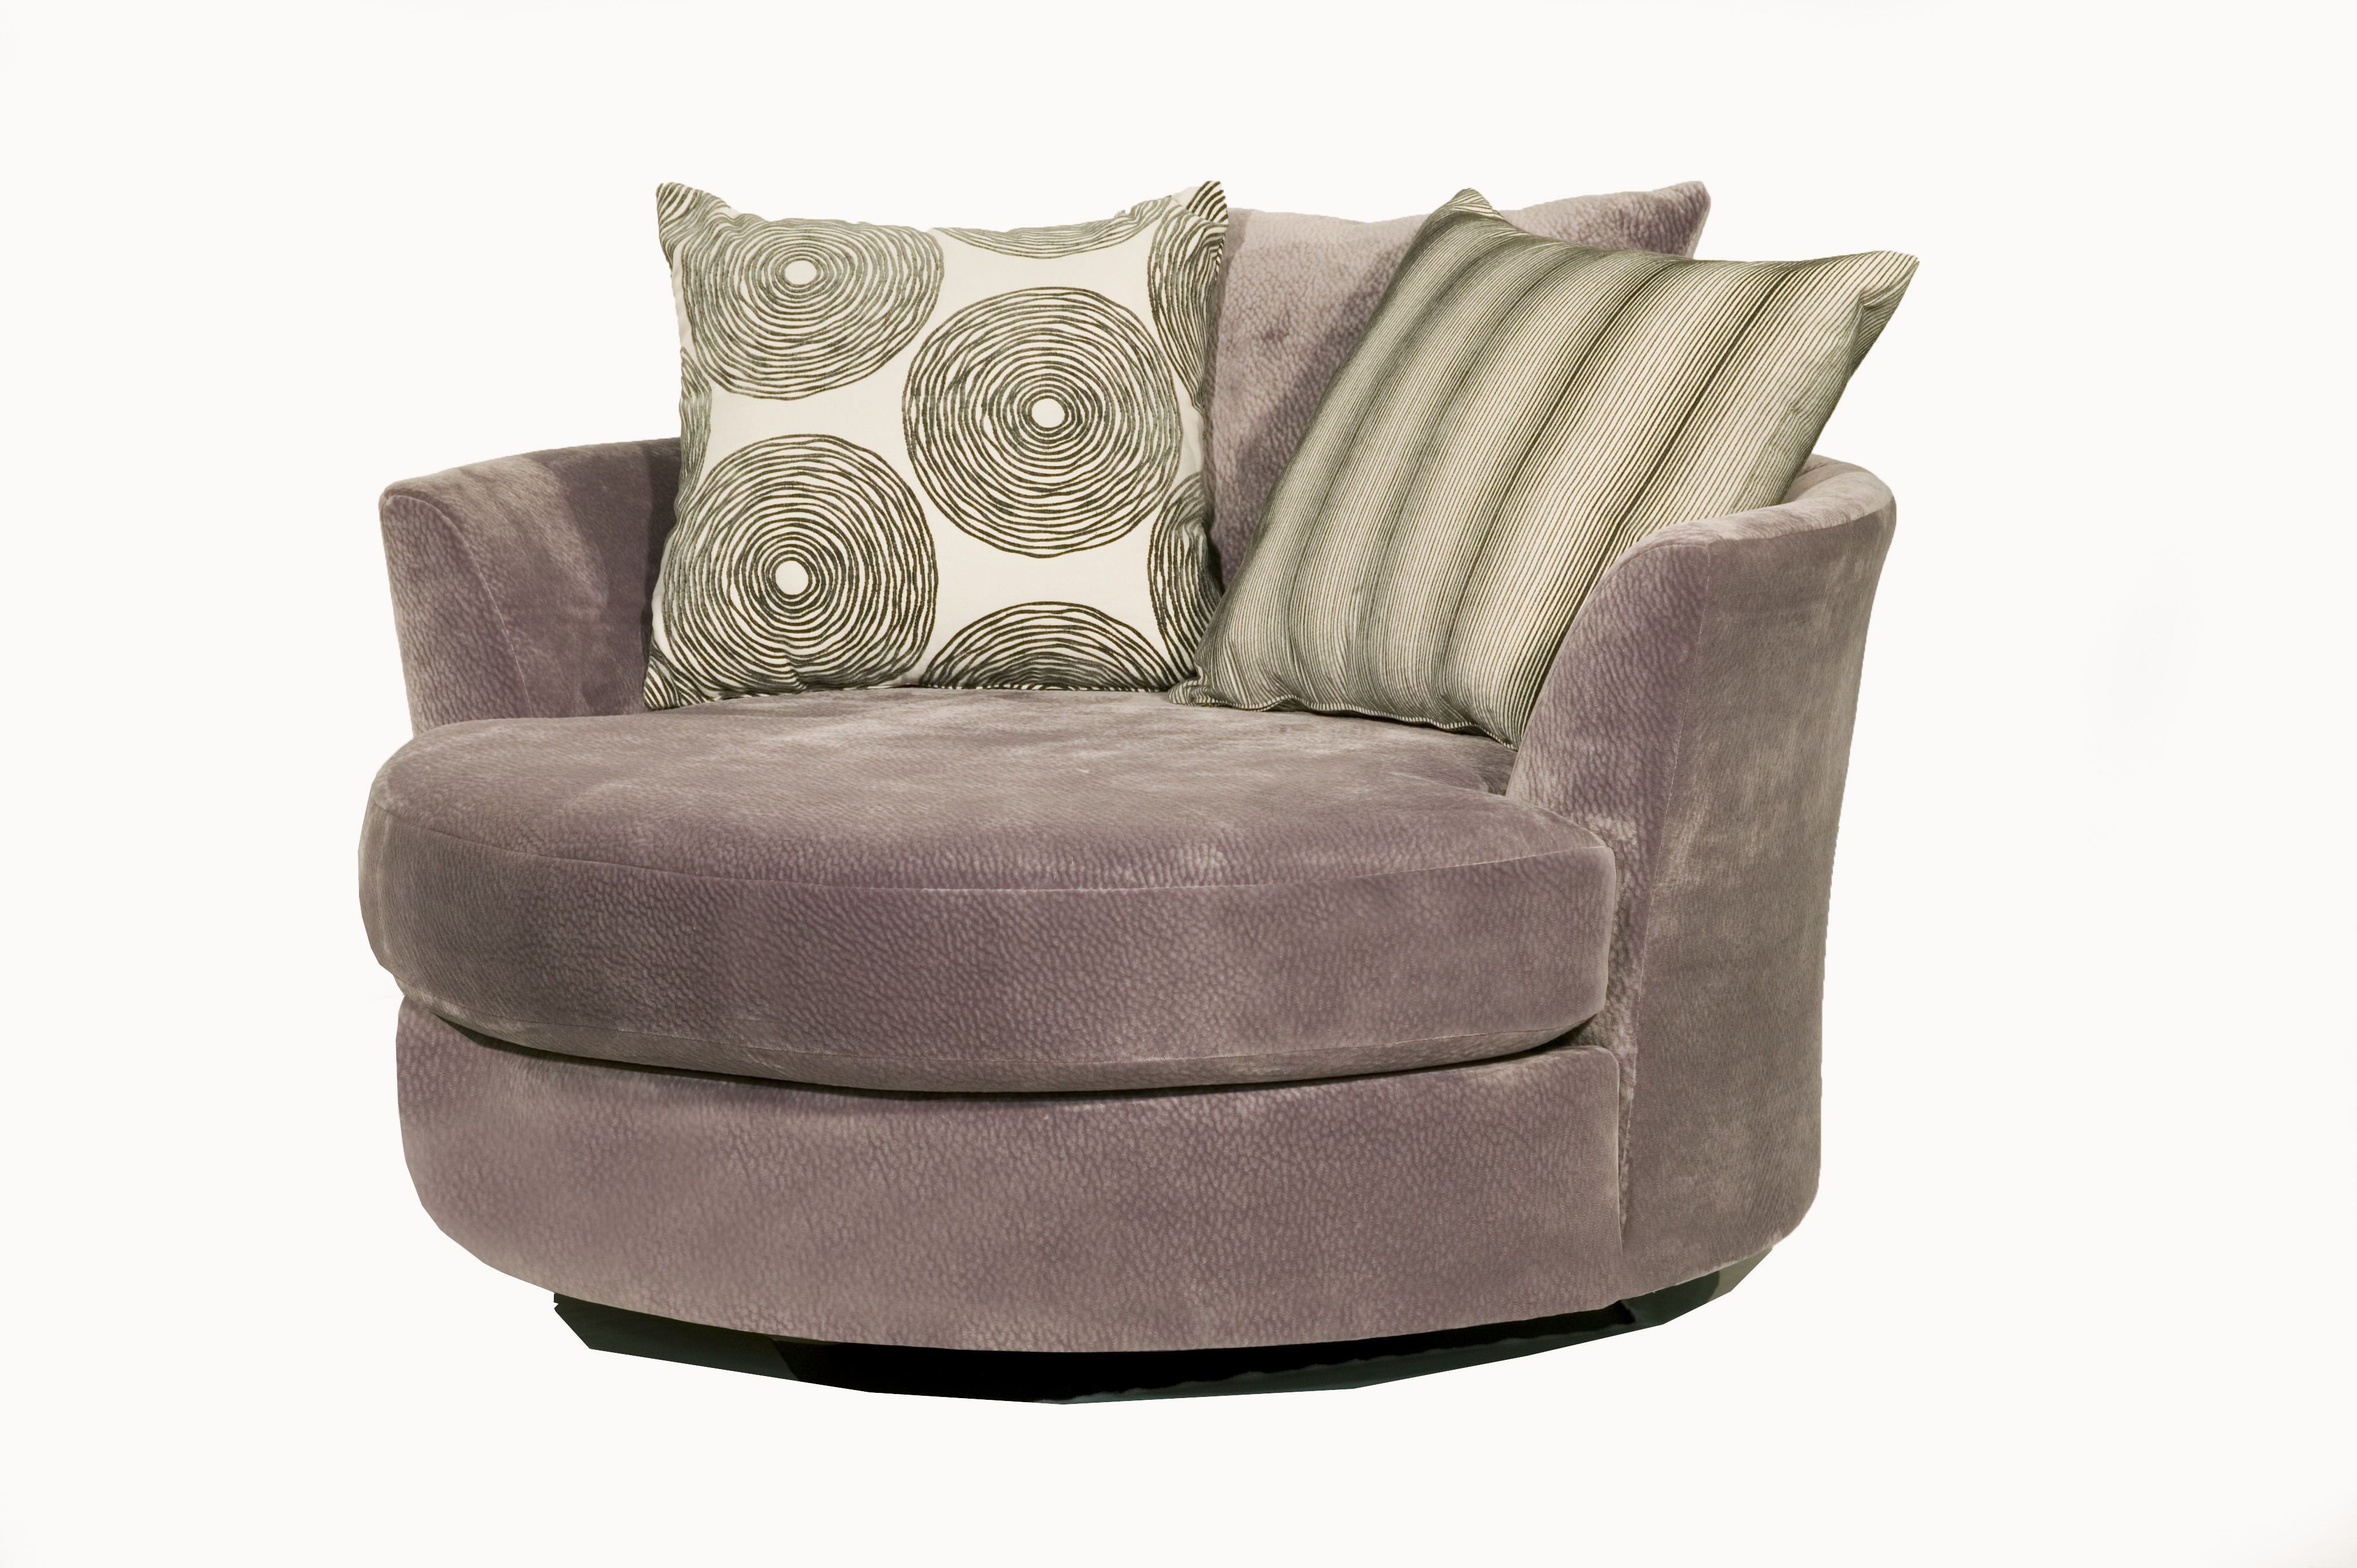 Robert Michael 9645 Cuddler Swivel Chair With Most Up To Date Cuddler Swivel Sofa Chairs (View 7 of 15)